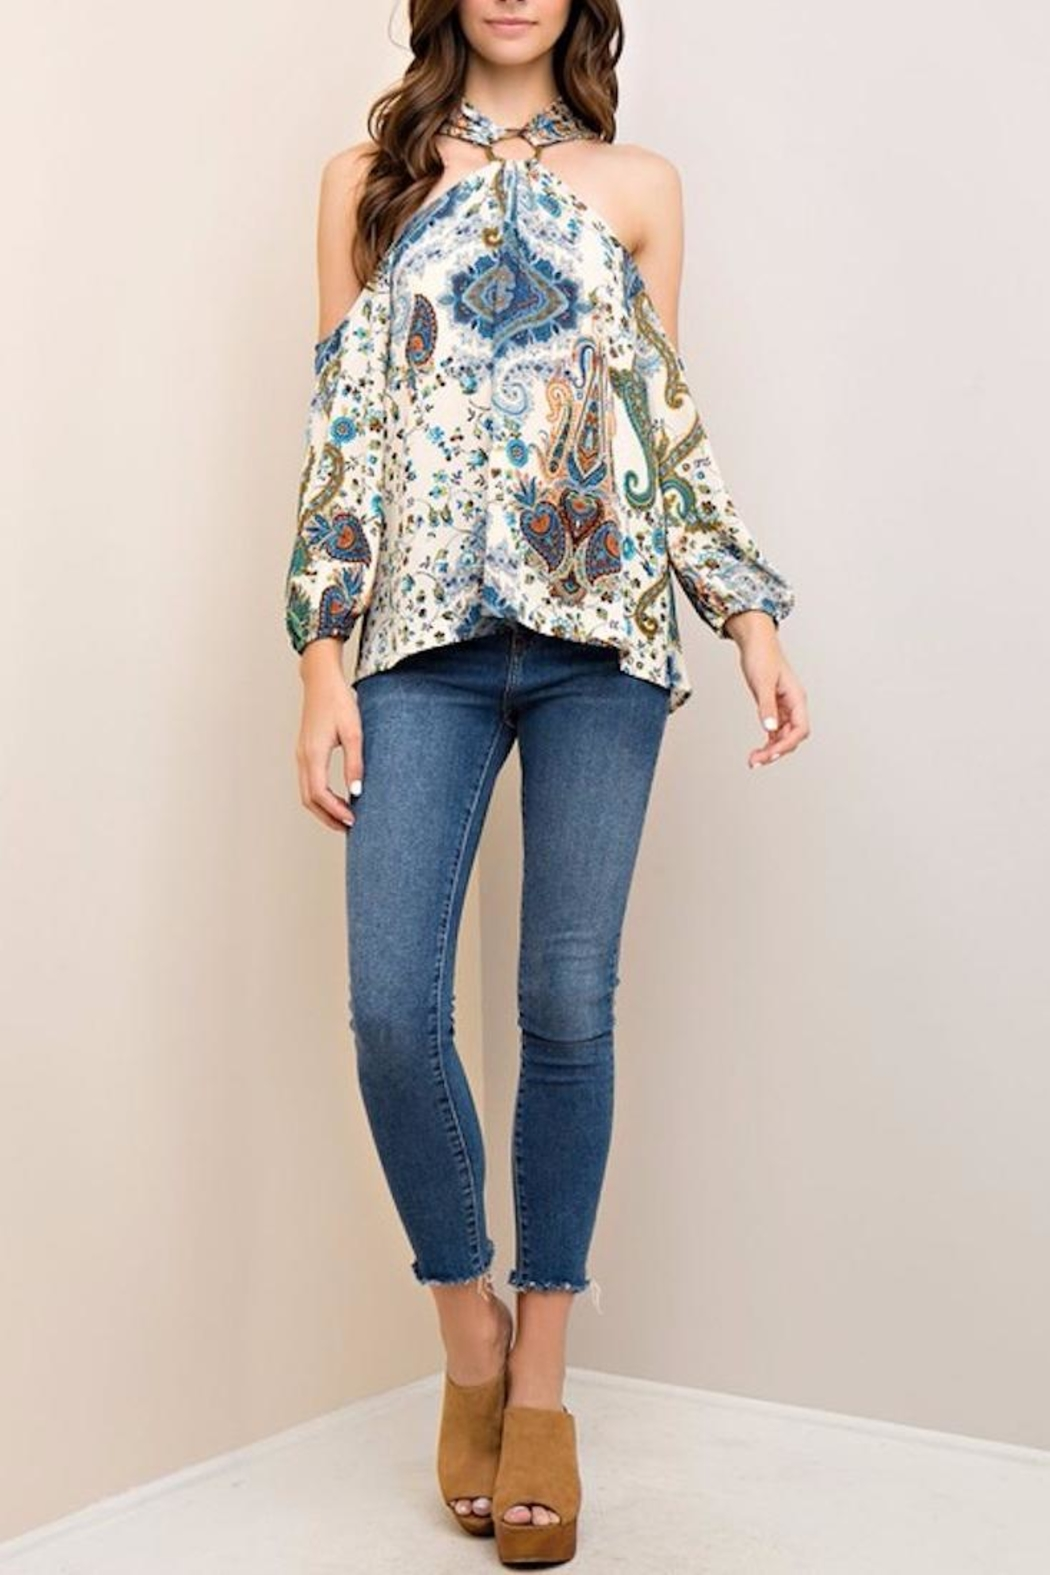 People Outfitter Limelight Paisley Top - Main Image